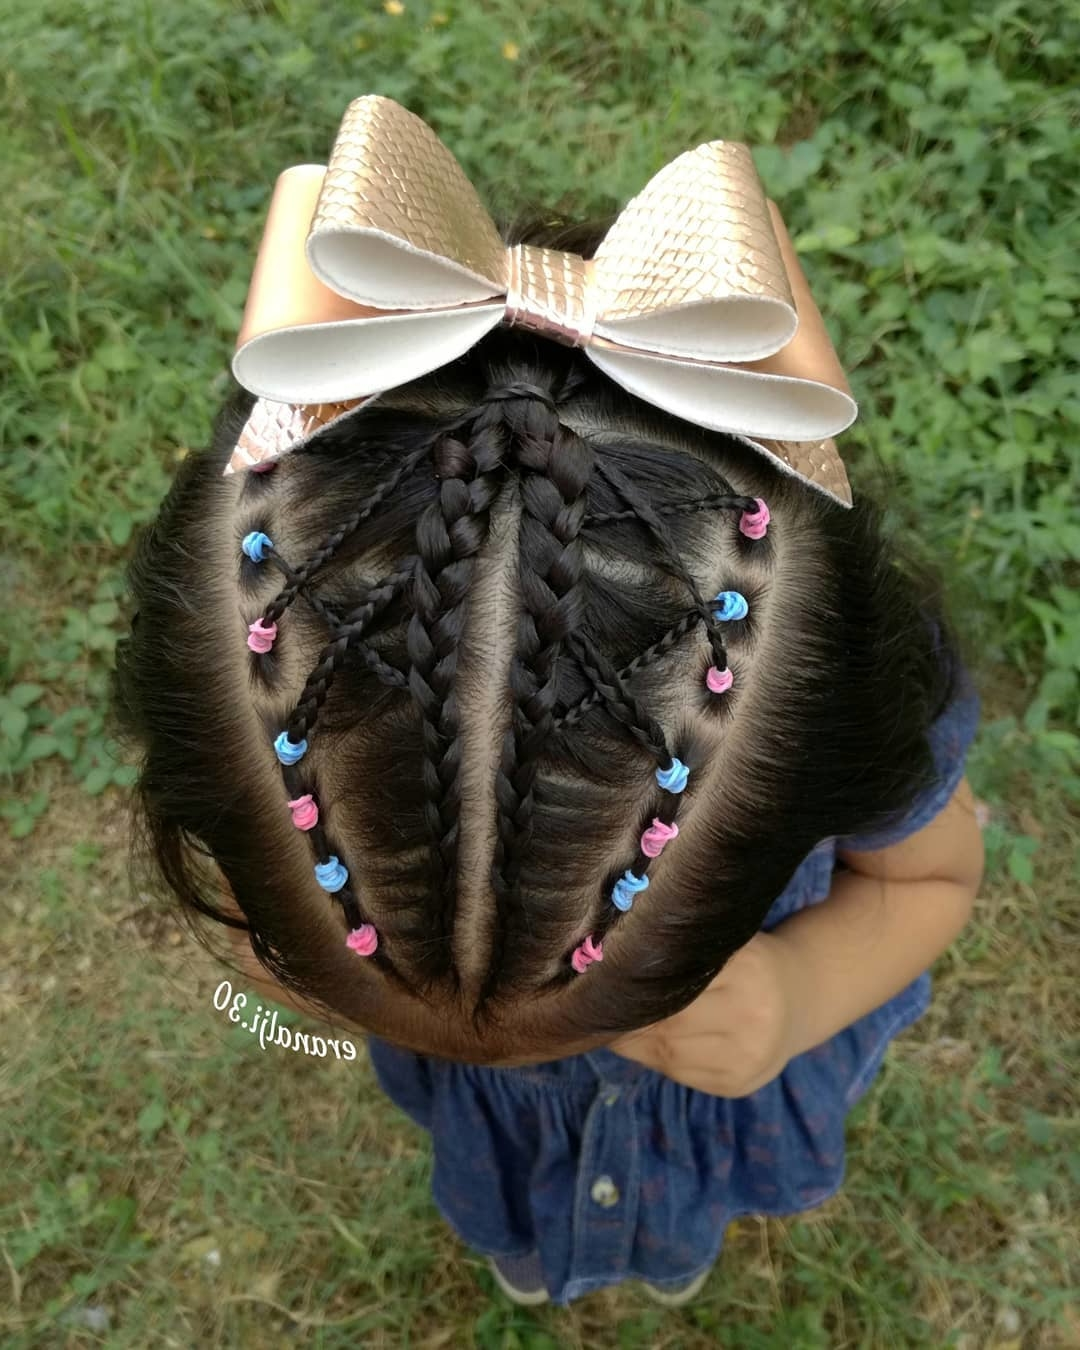 Hairstyles Cuts: 25 Easy Wacky Hairstyles For School Girl